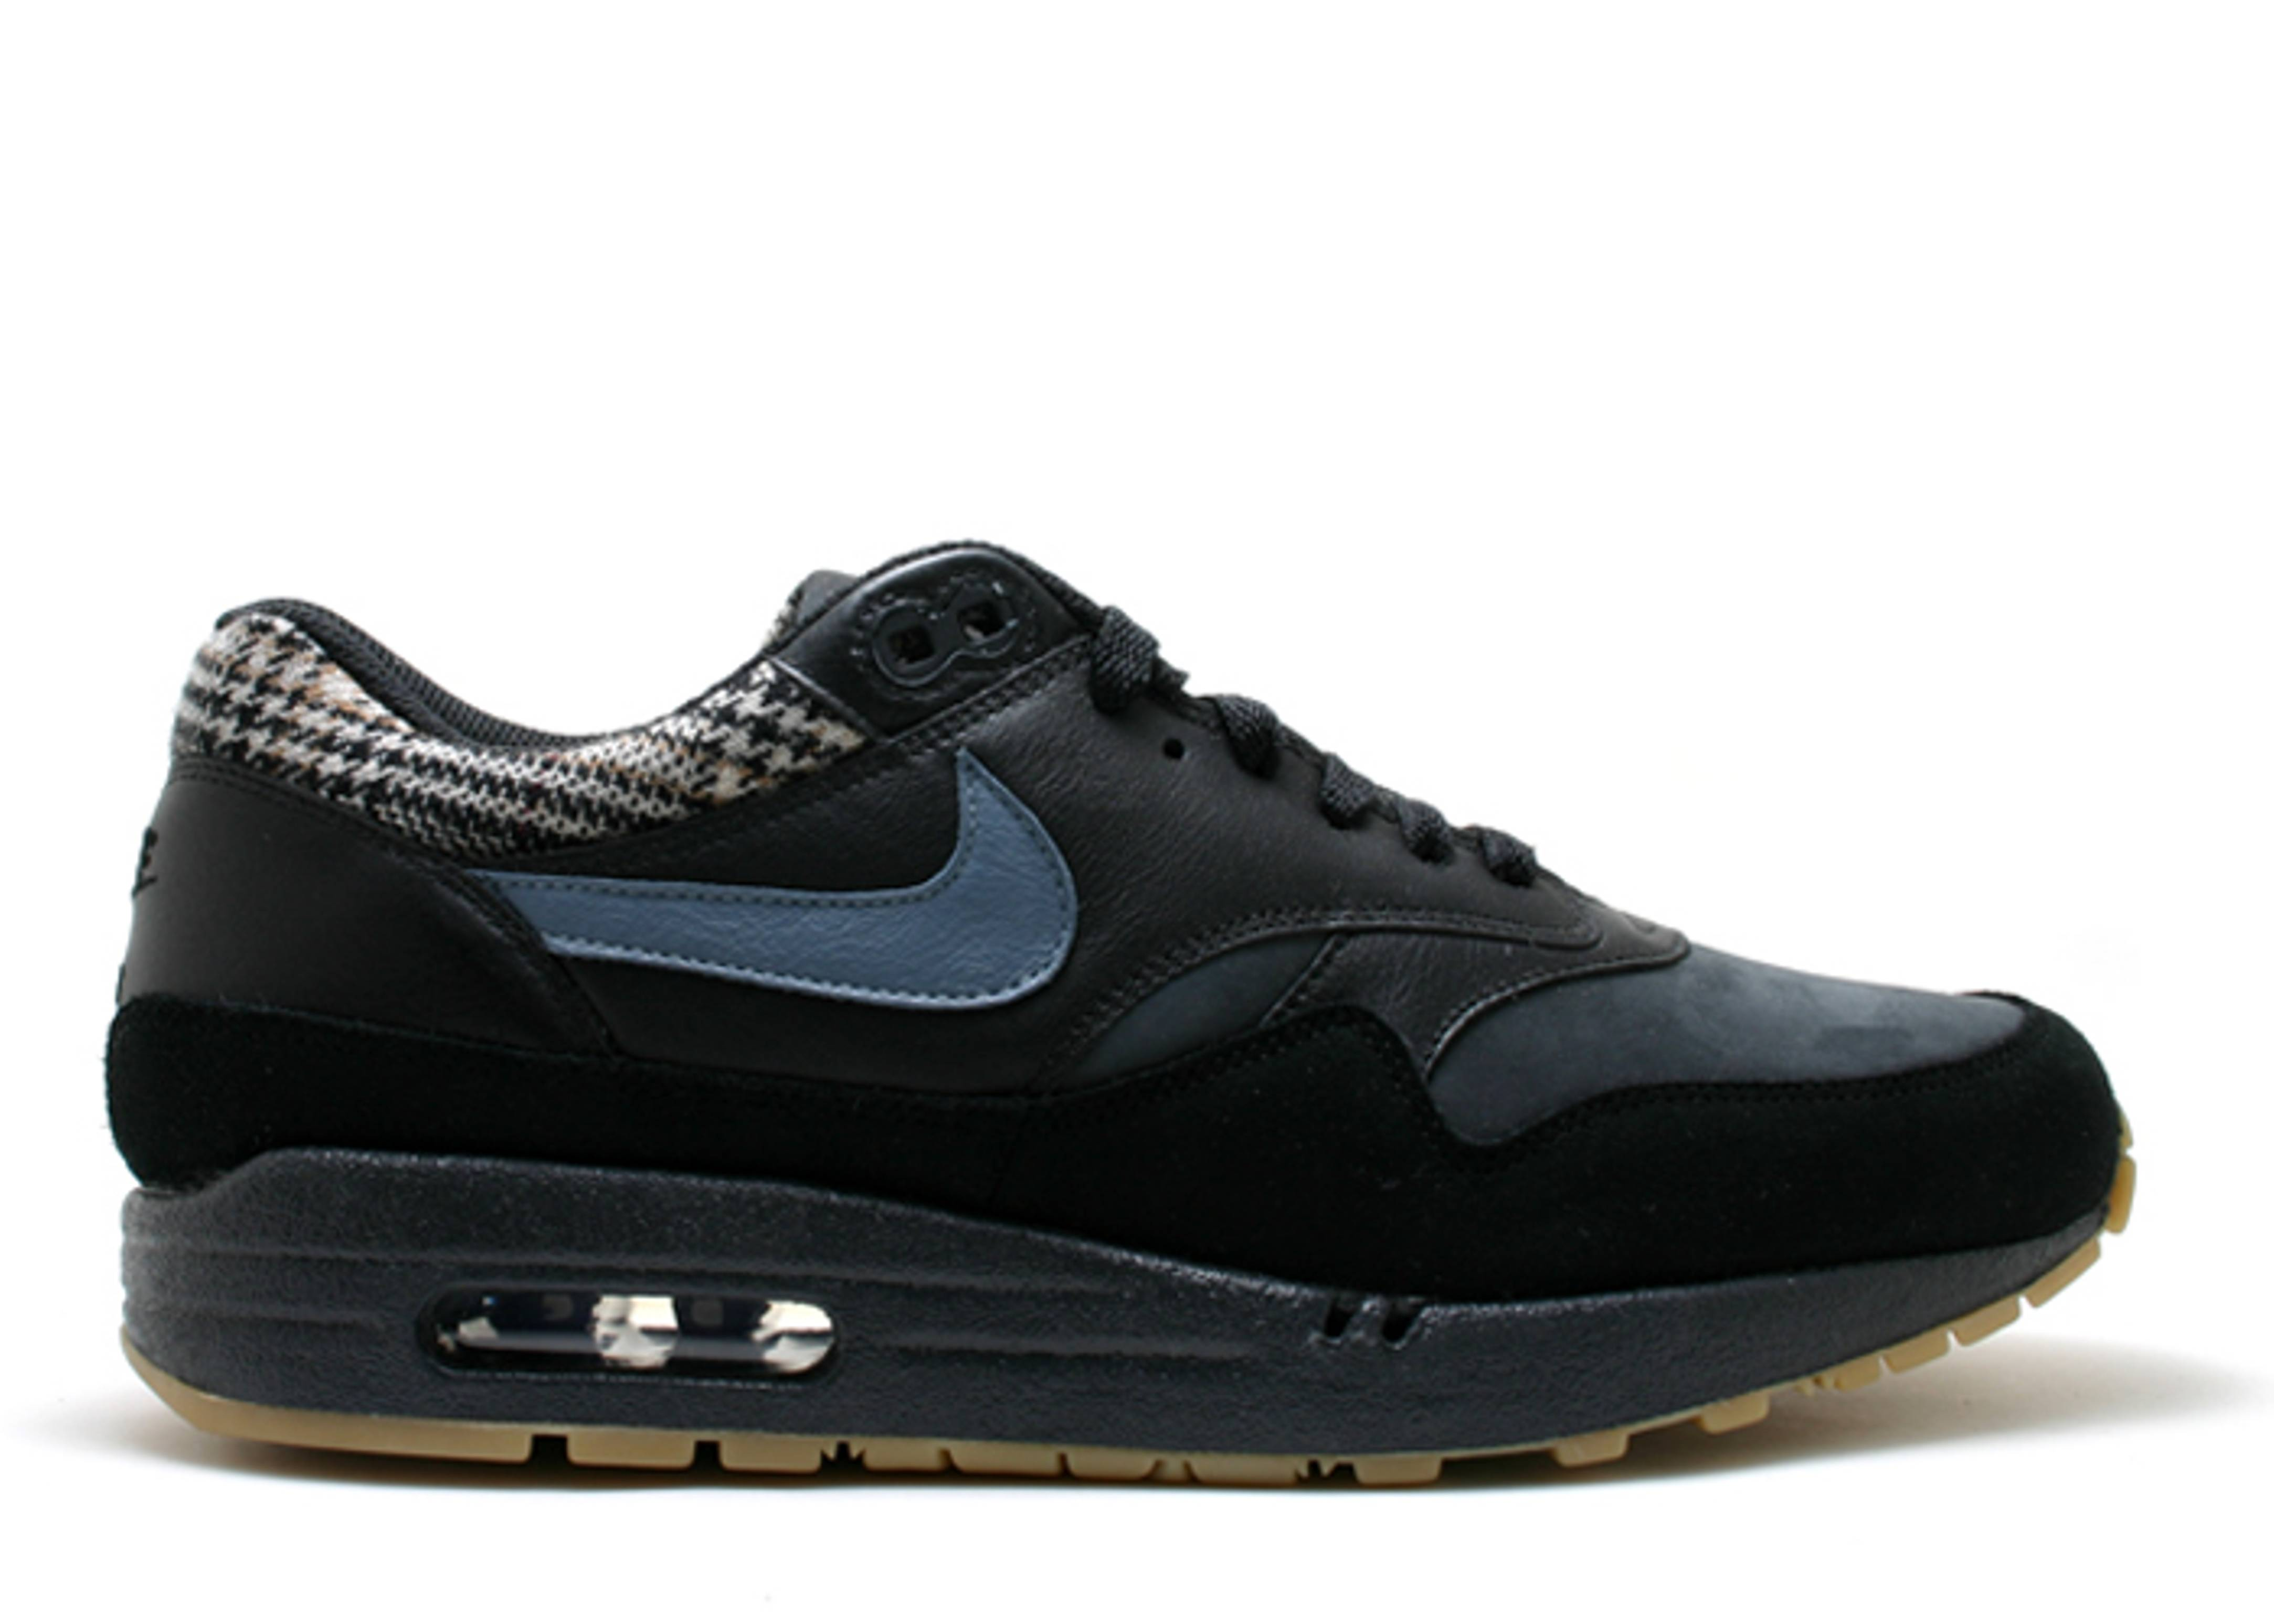 quality design 0354d e80f4 nike. air max 1 premium